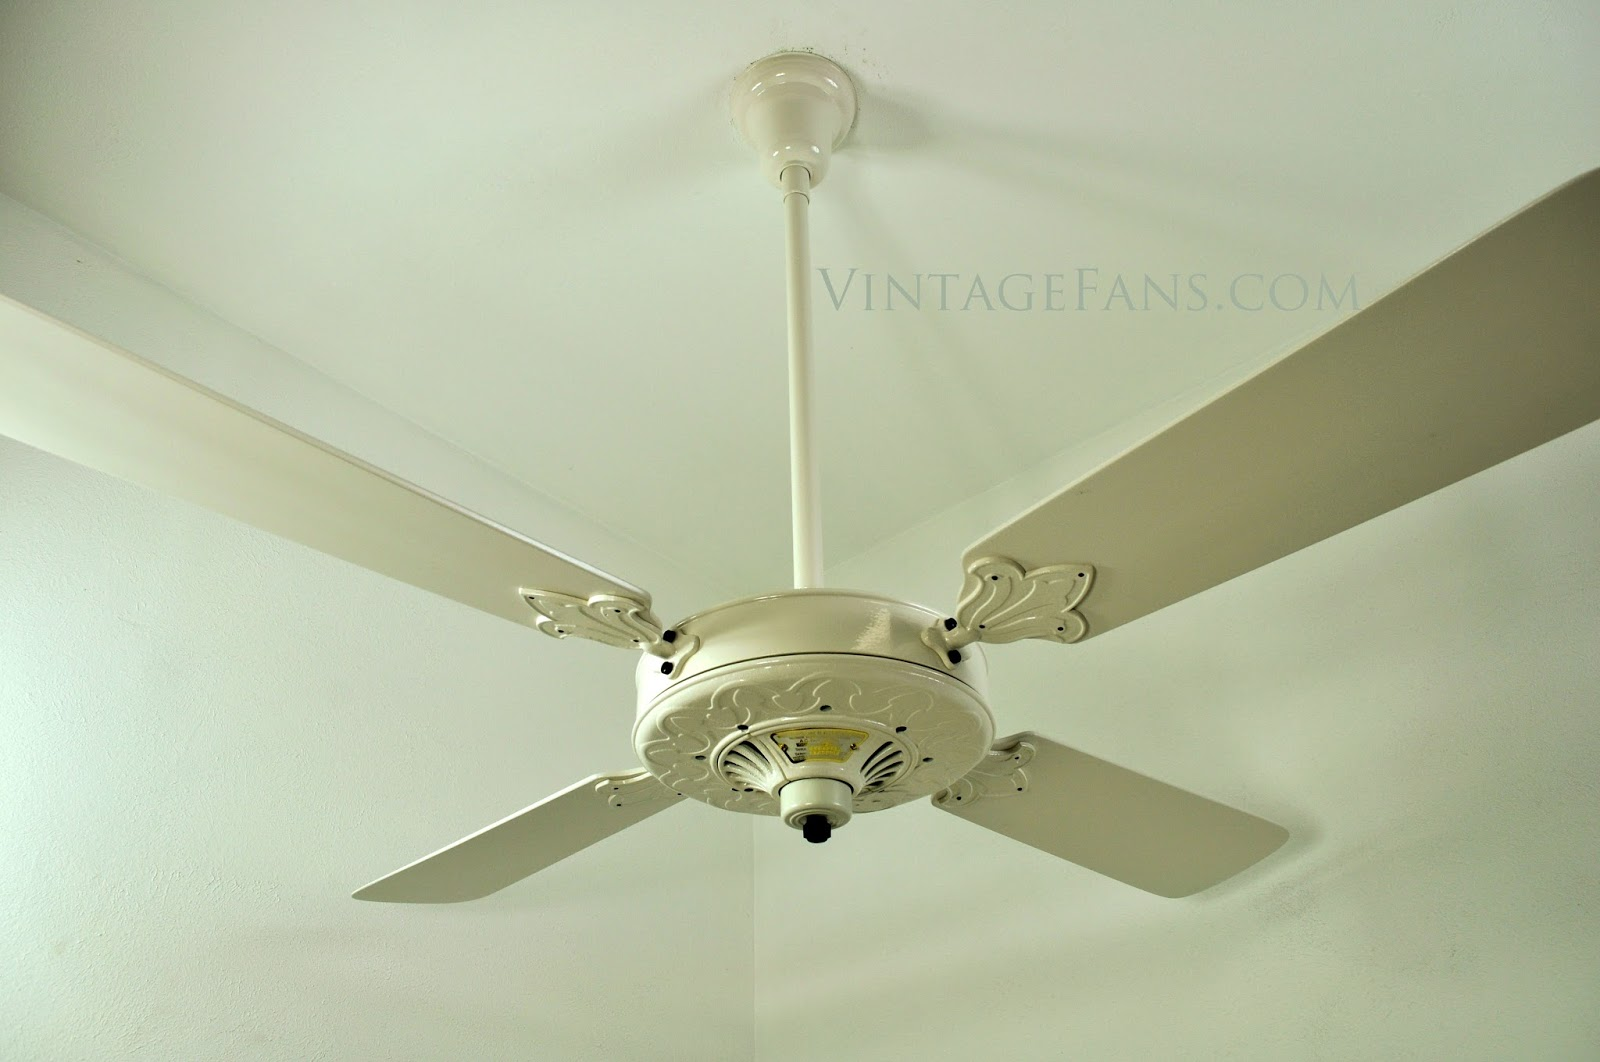 Vintage fans blog vintage fans llc gatsby style 1920s westinghouse ceiling fan featured at lucky brands pasadena ca store mozeypictures